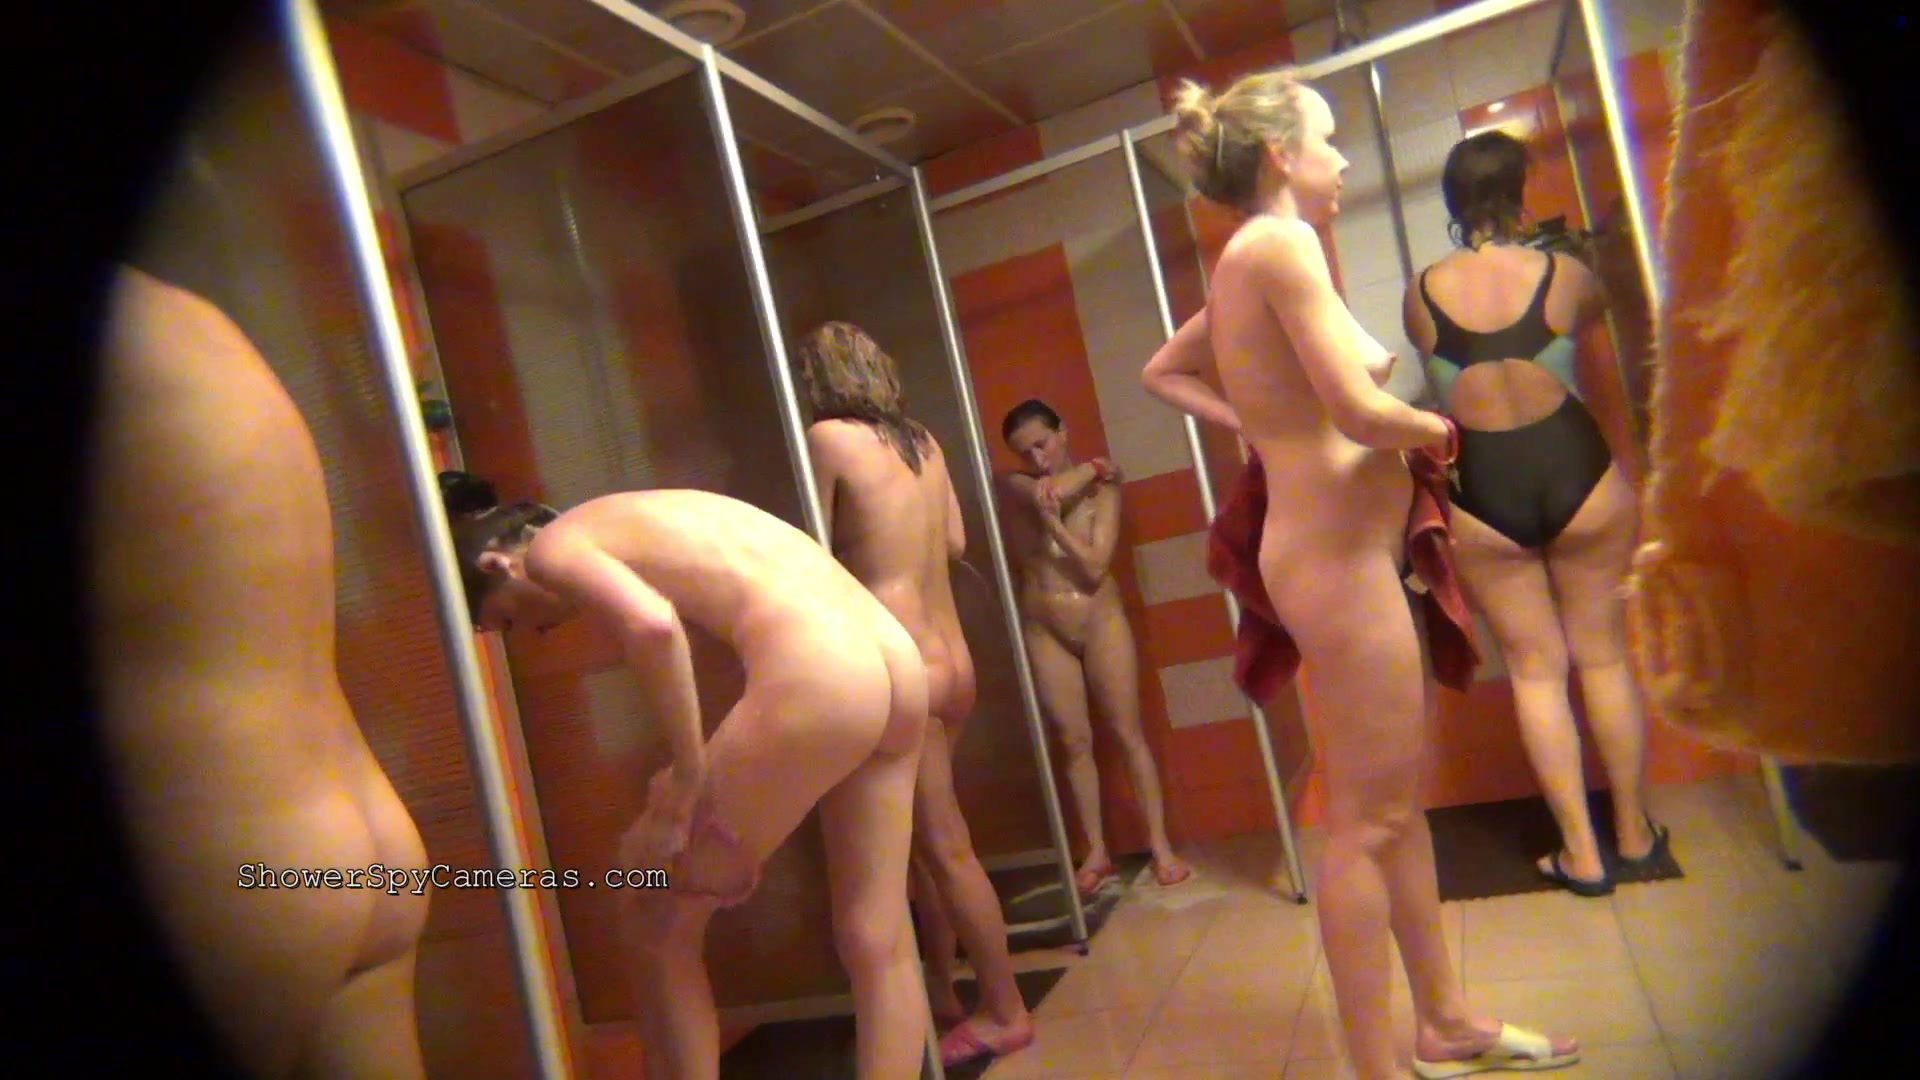 locker room hidden camera